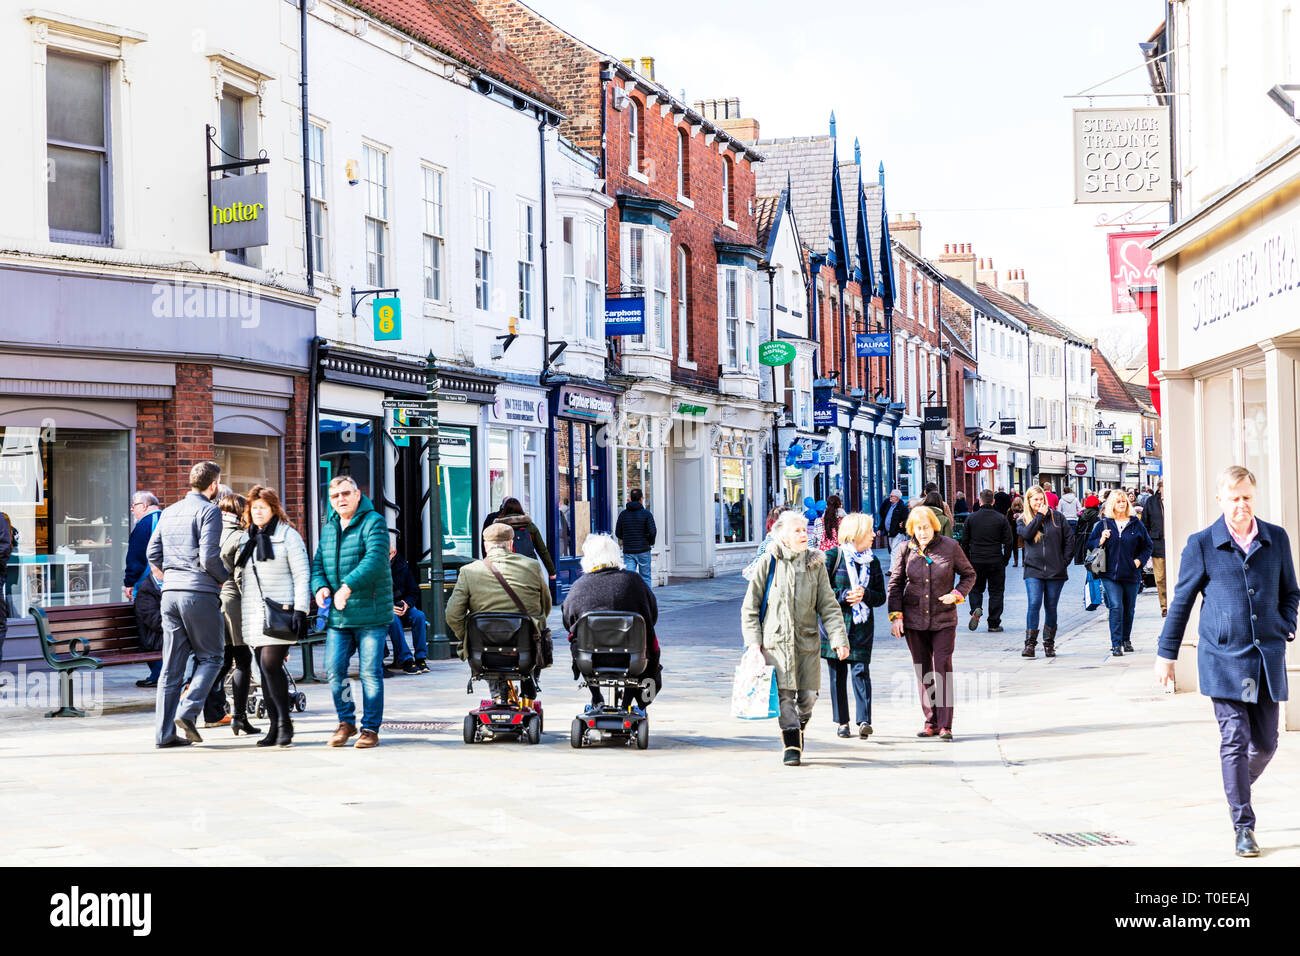 Beverley town centre, Beverley high street, center, shops, shoppers, stores outside main street shopping area Beverley Yorkshire UK England Stock Photo